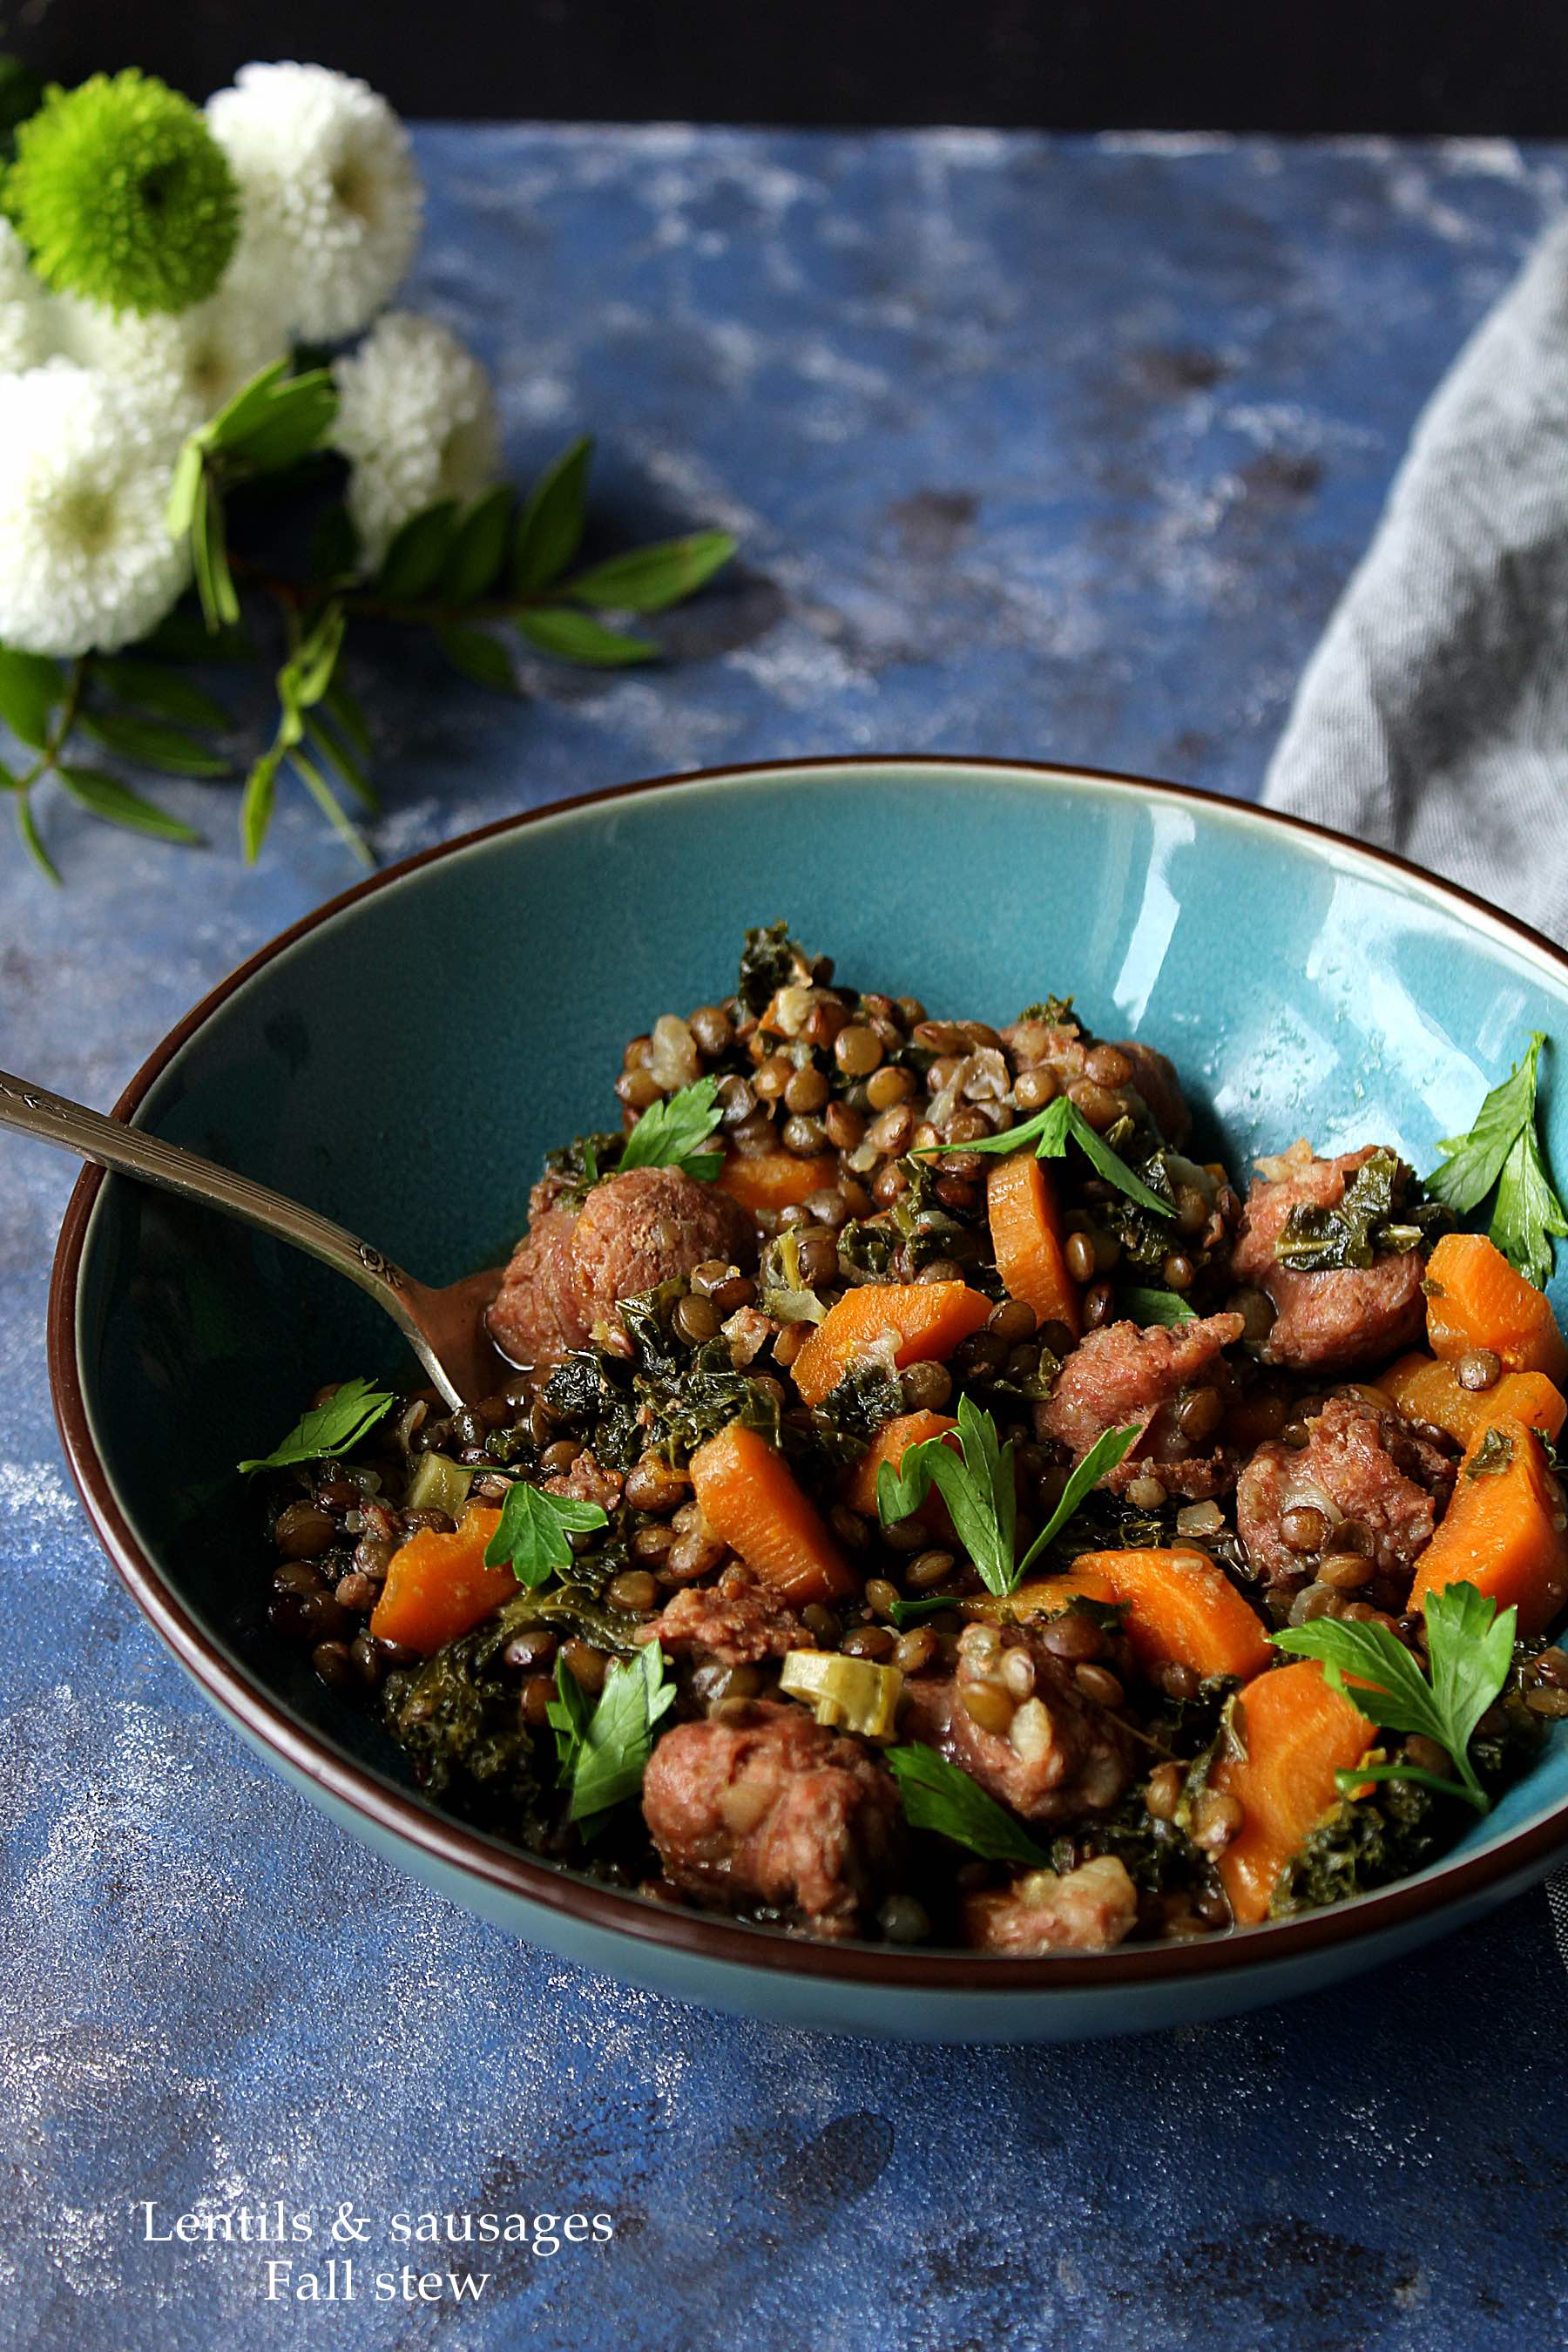 Lentils & sausages Fall stew